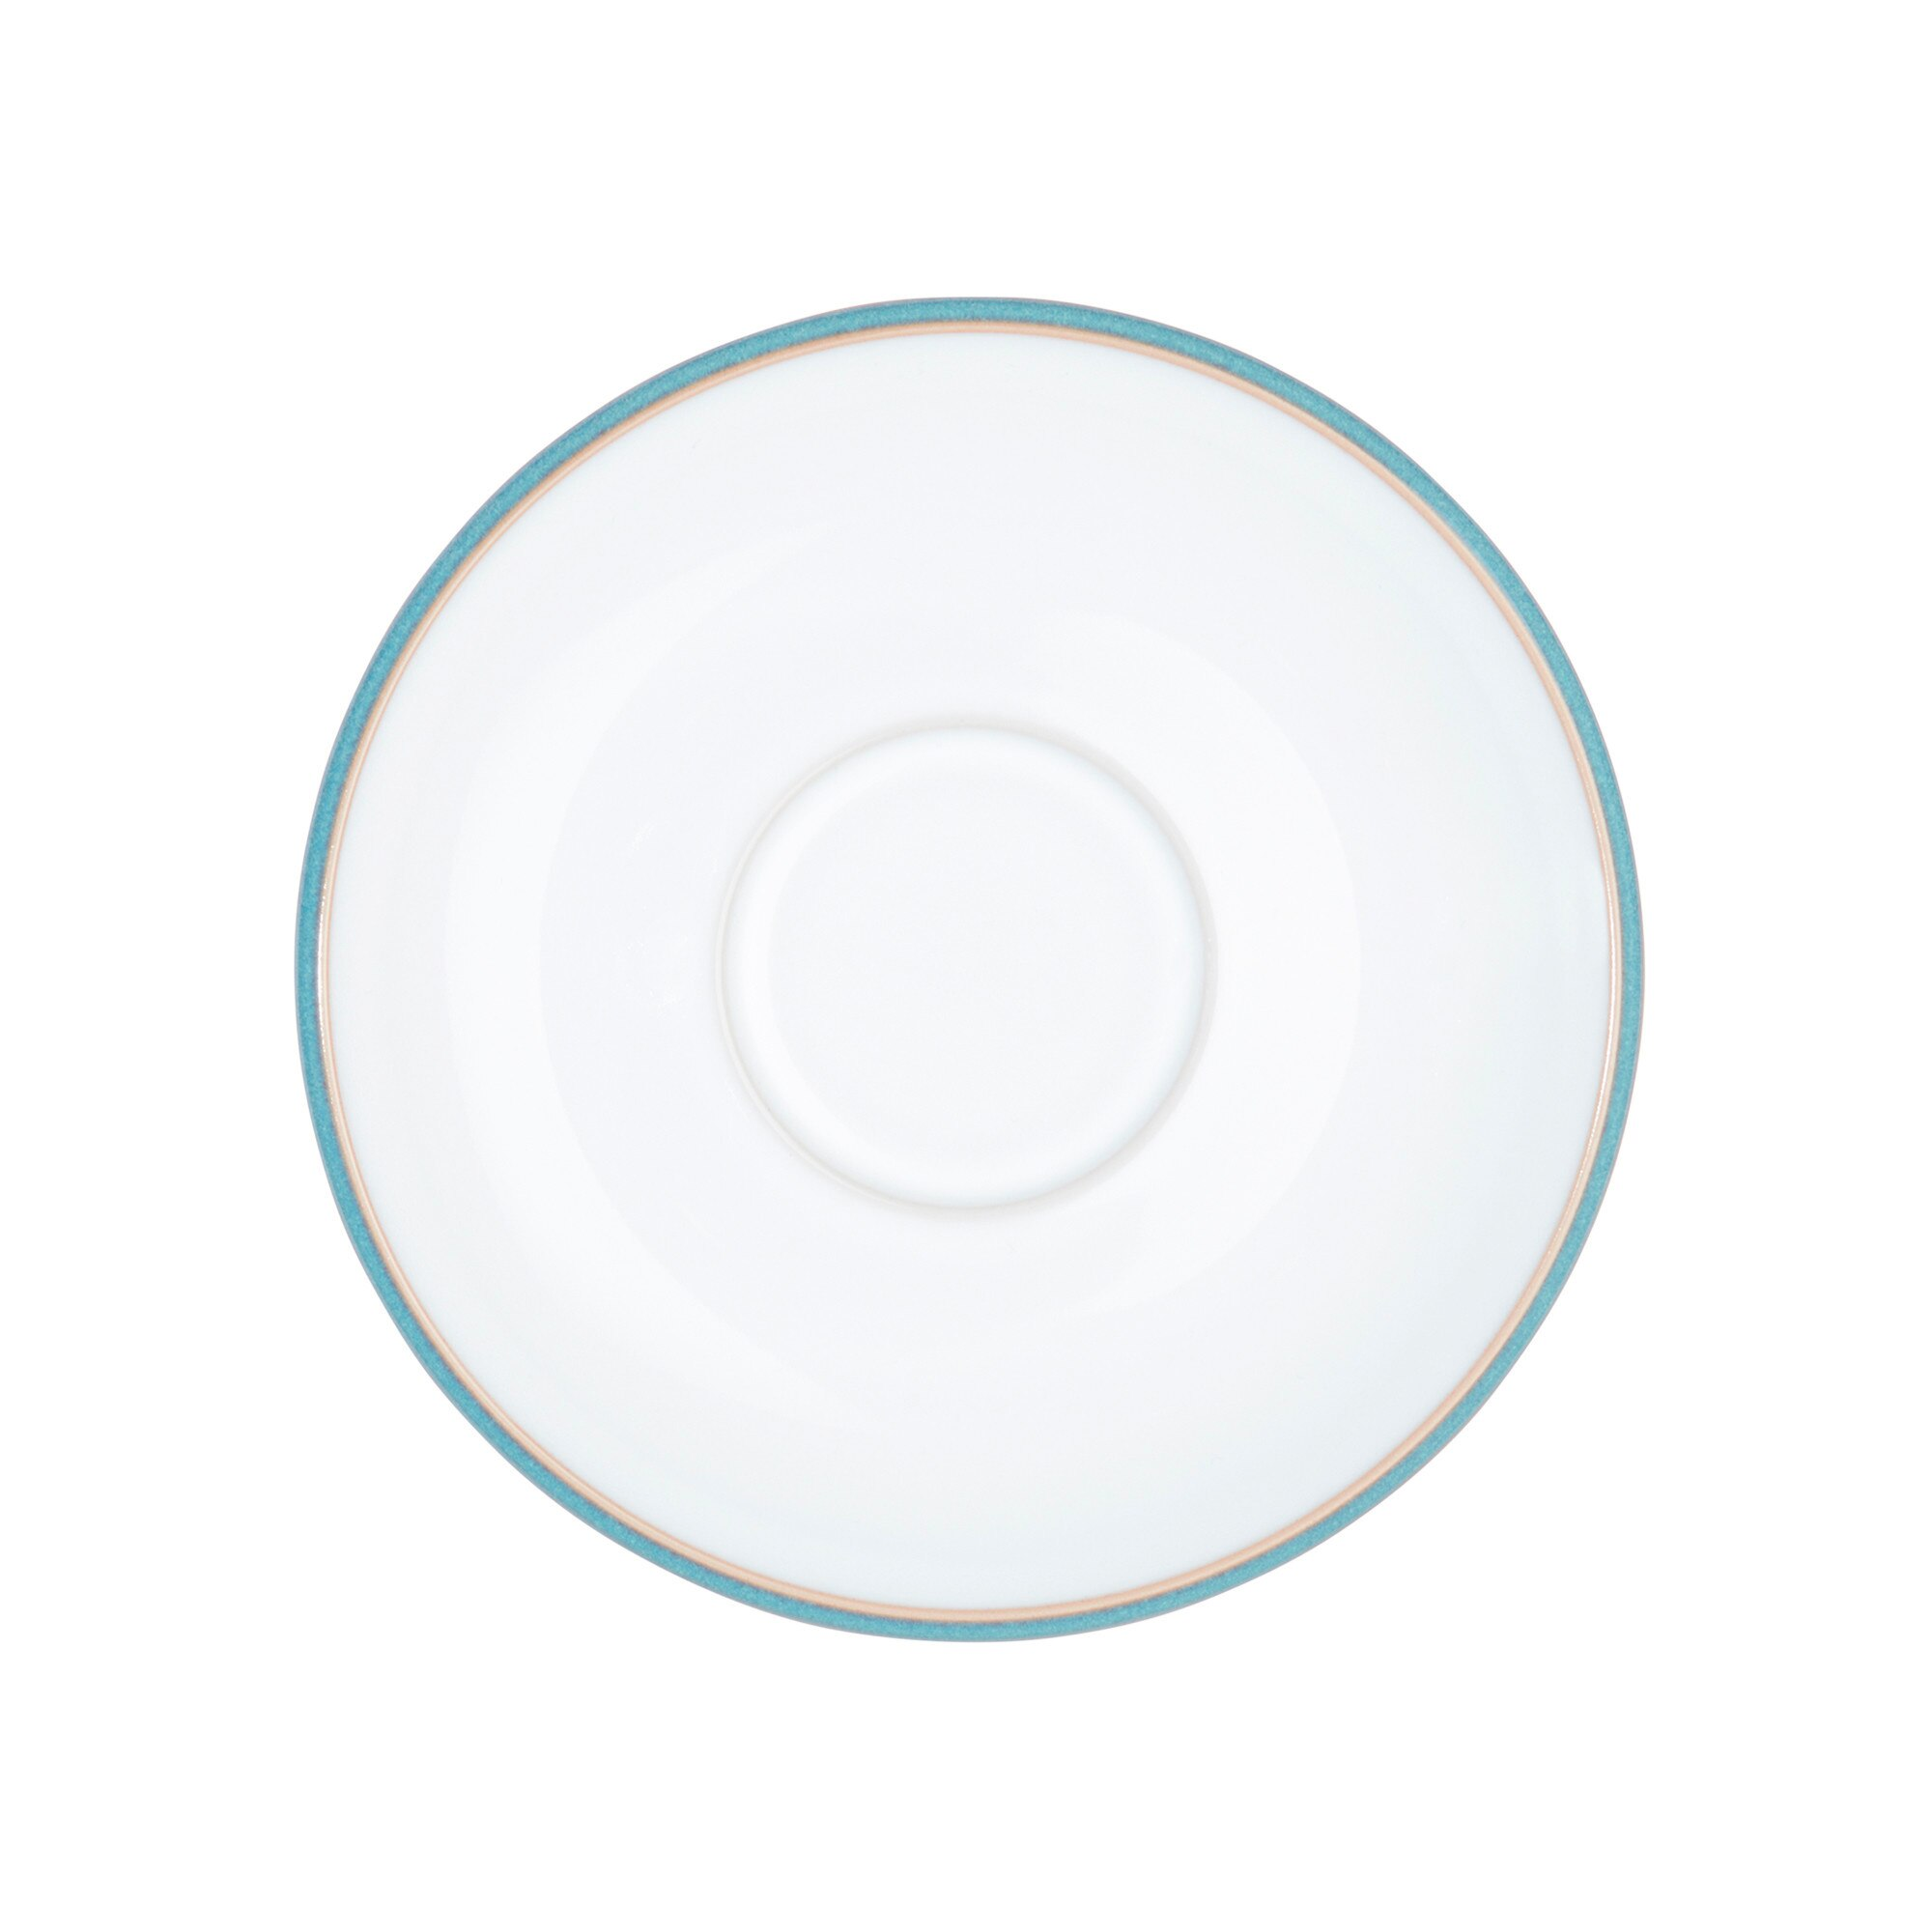 Compare prices for Denby Azure Tea Coffee Saucer